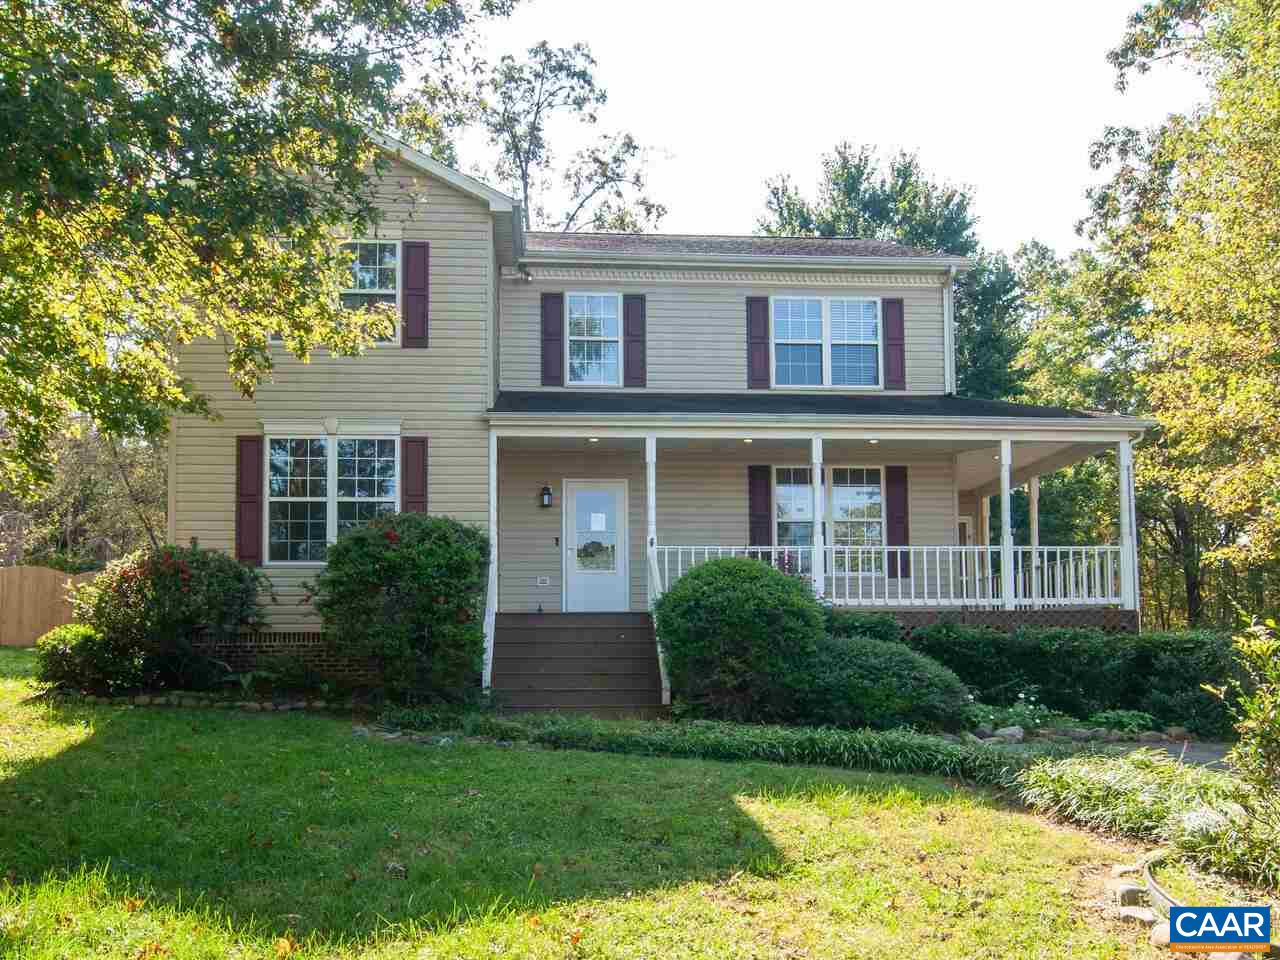 3209 S CHESTERFIELD CT, CHARLOTTESVILLE, VA 22911